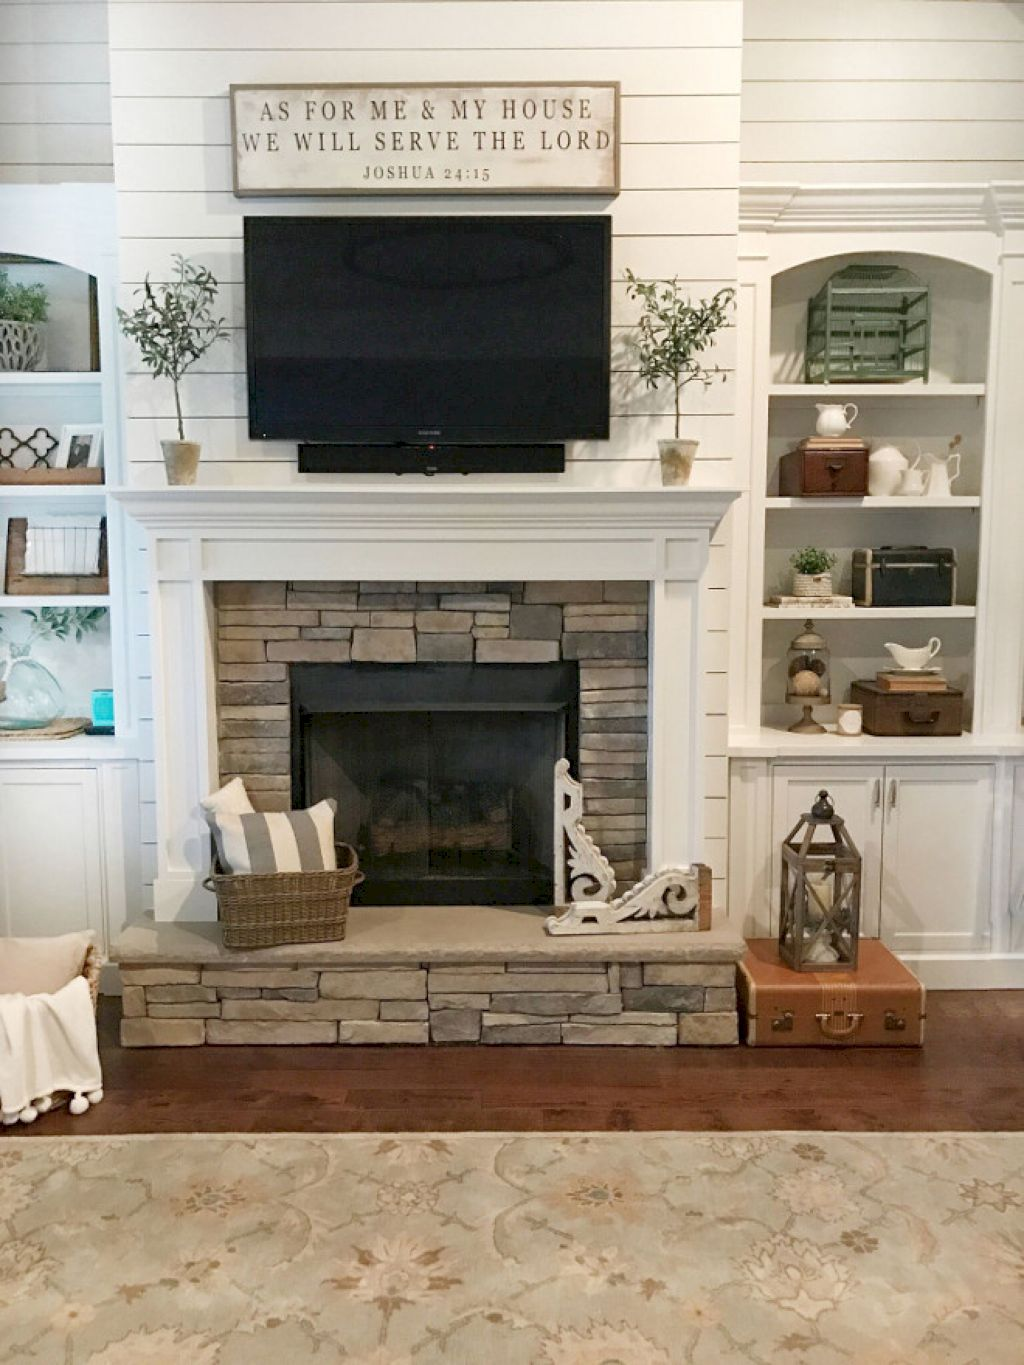 Small Living Room Ideas With Brick Fireplace Sofa 50 Cozy Farmhouse Decor Family Rooms 42 Attractive Kitchen Let S Diy Home Adorable